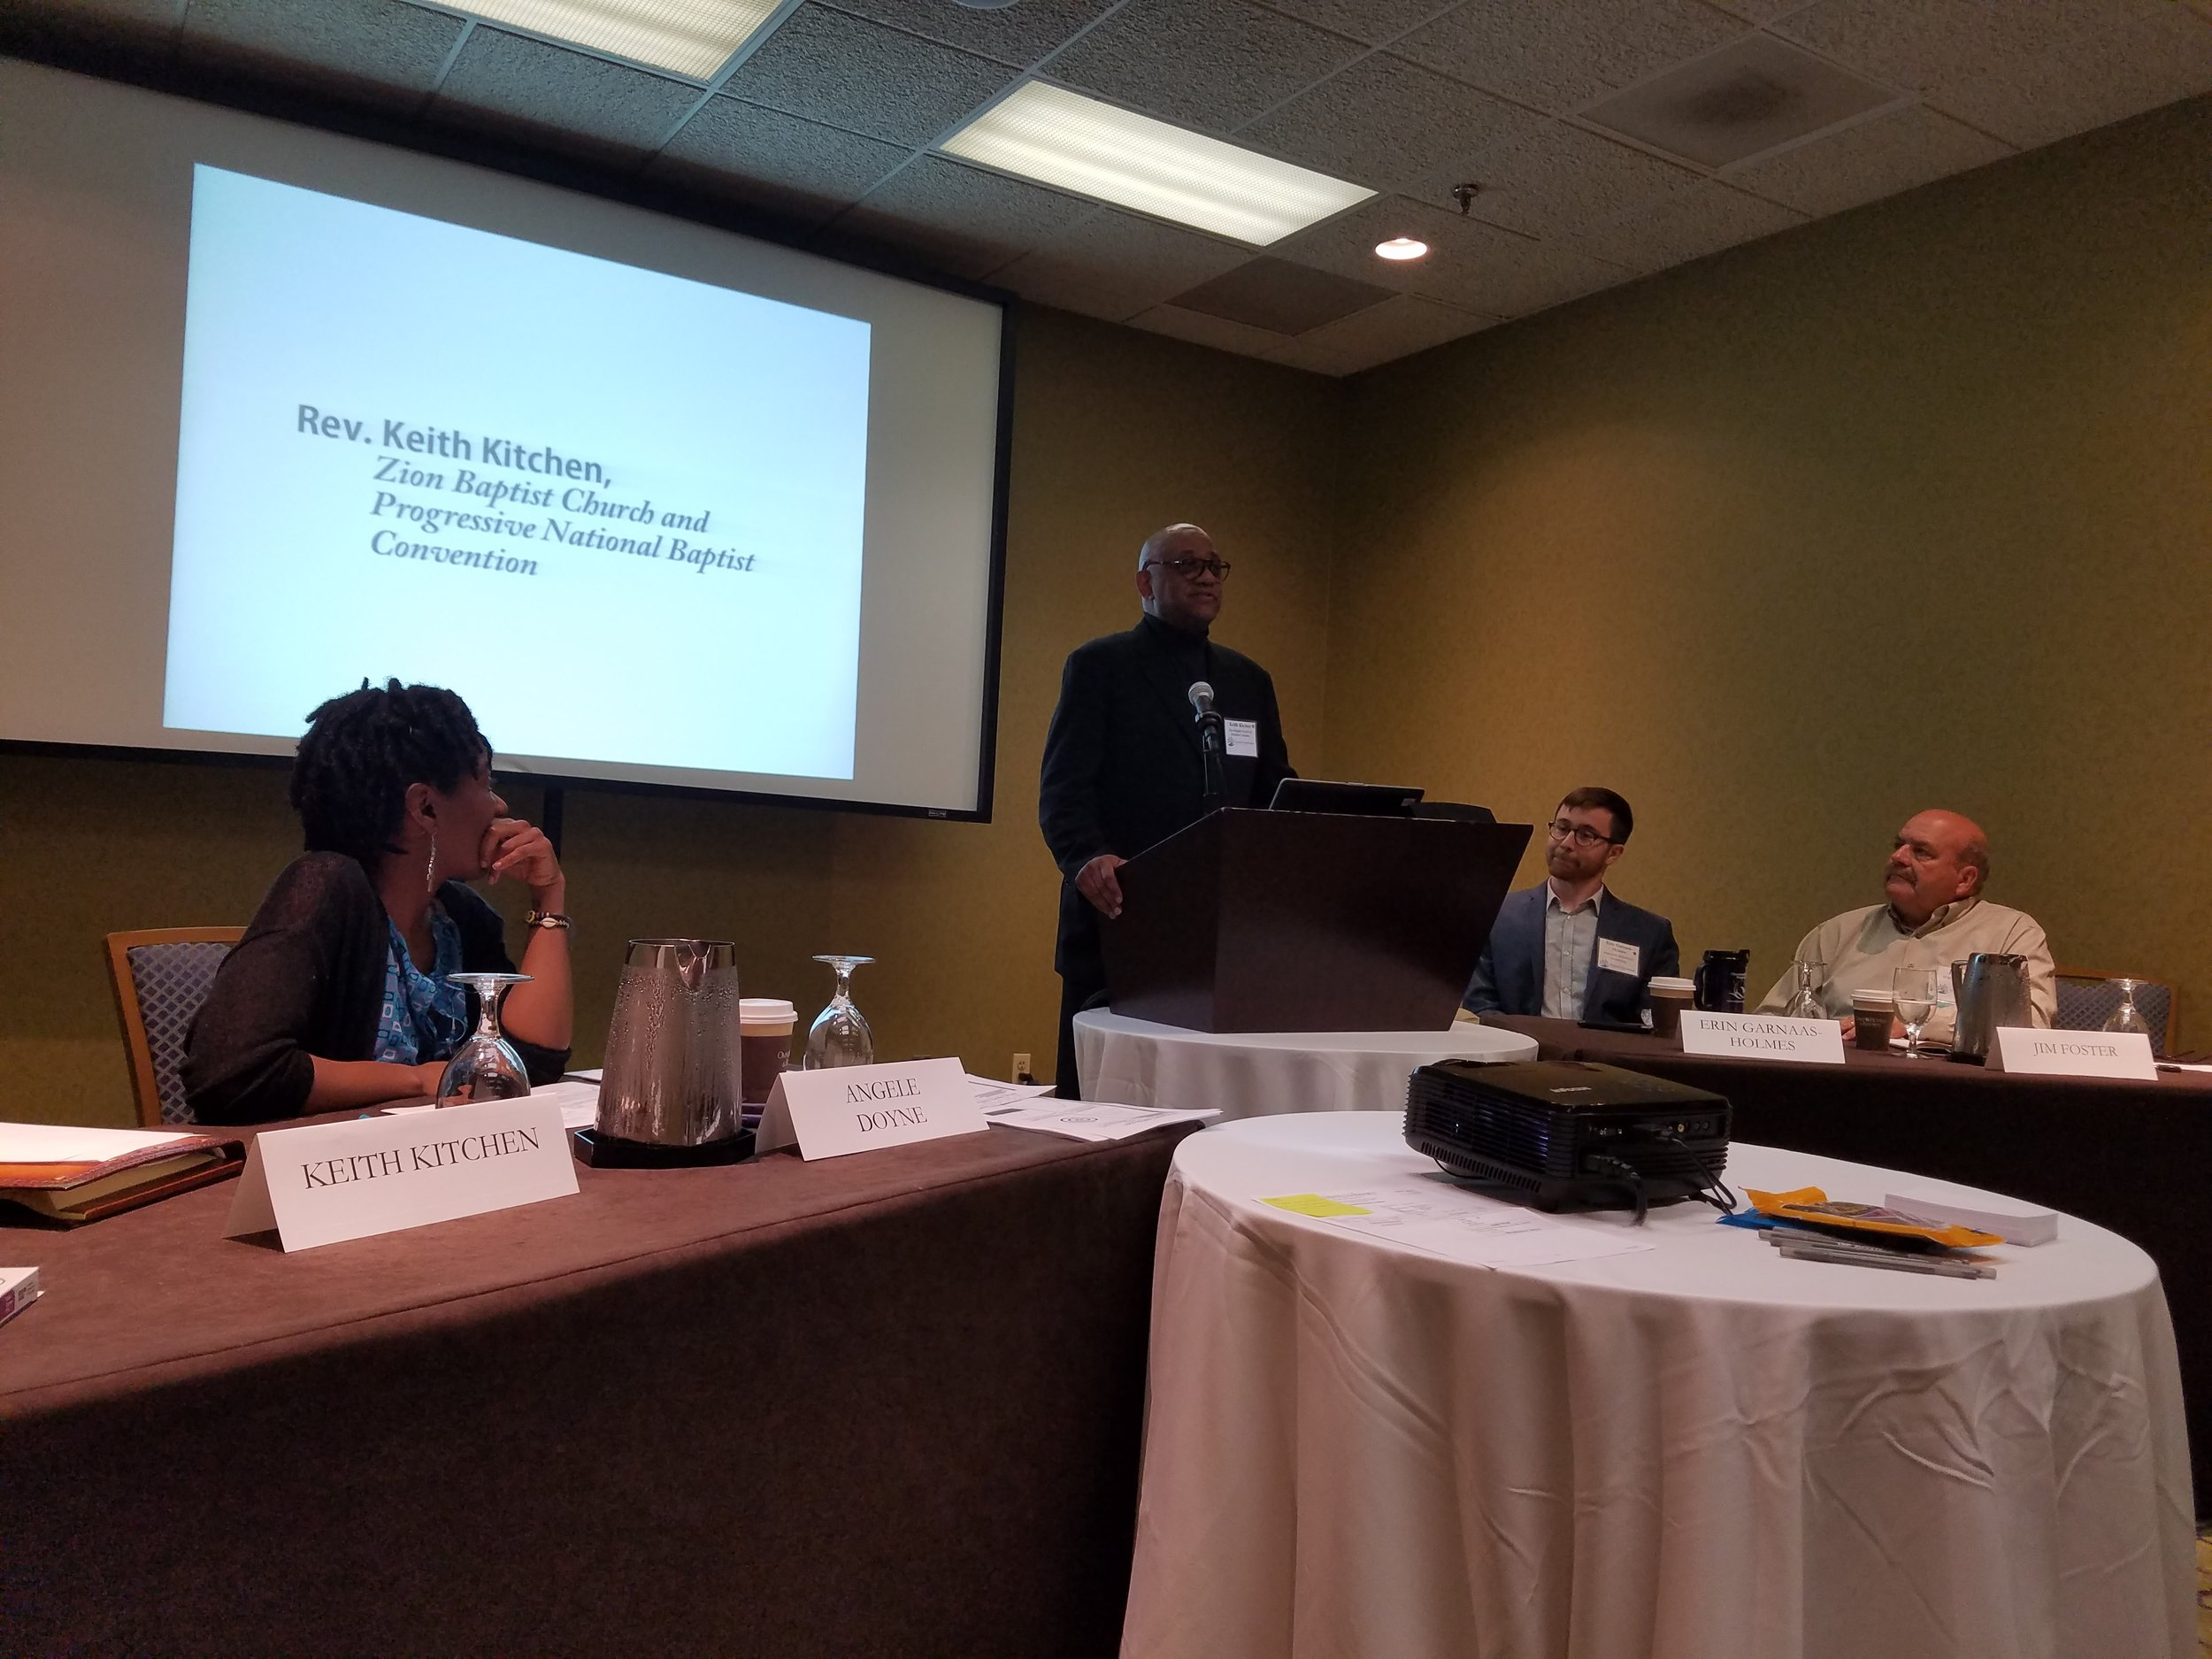 Rev. Keith Kitchen presents at the Choose Clean Water Conference in Charlottesville, VA on June 23.